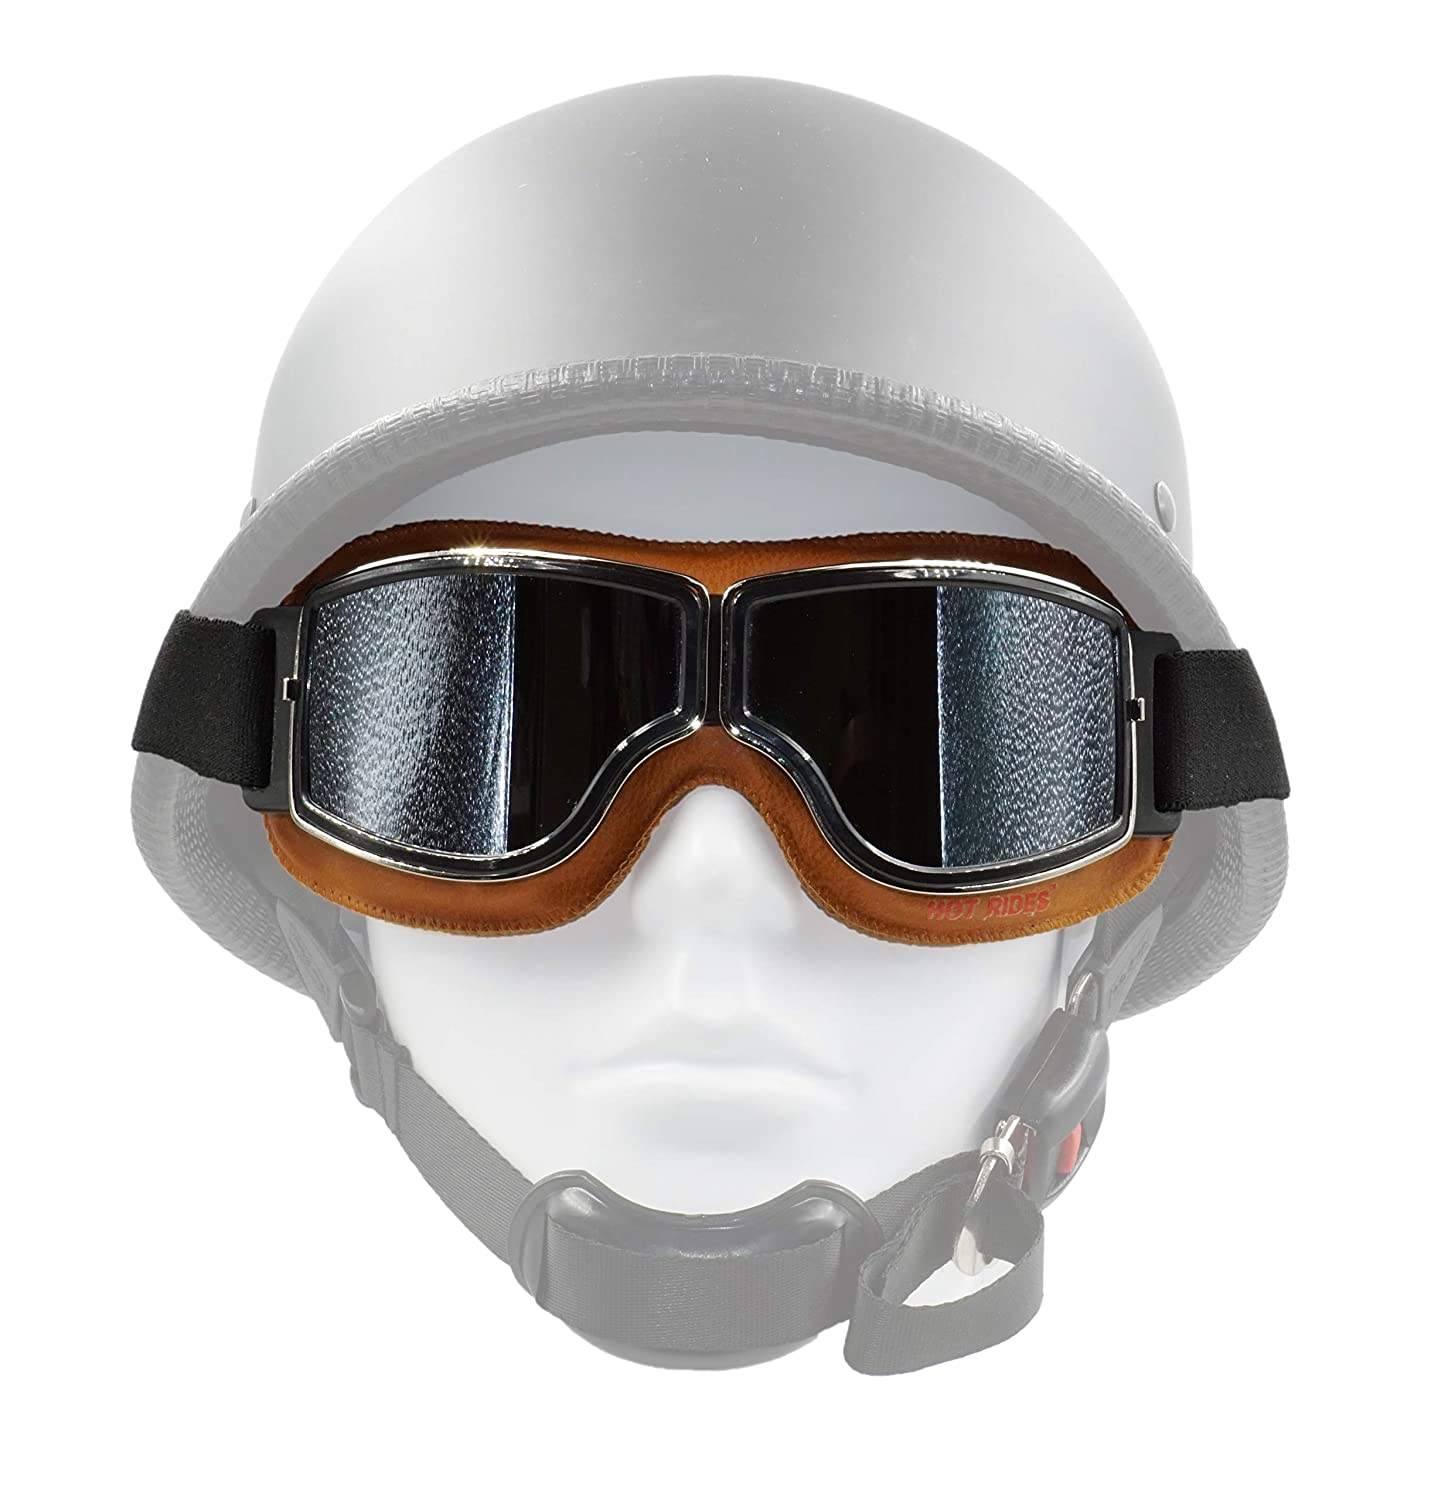 Hot Rides Classic Vintage Aviator Pilot Motorcycle Goggles Protective Glasses (Silver Frame/Plating Lens) PB BP-MOT